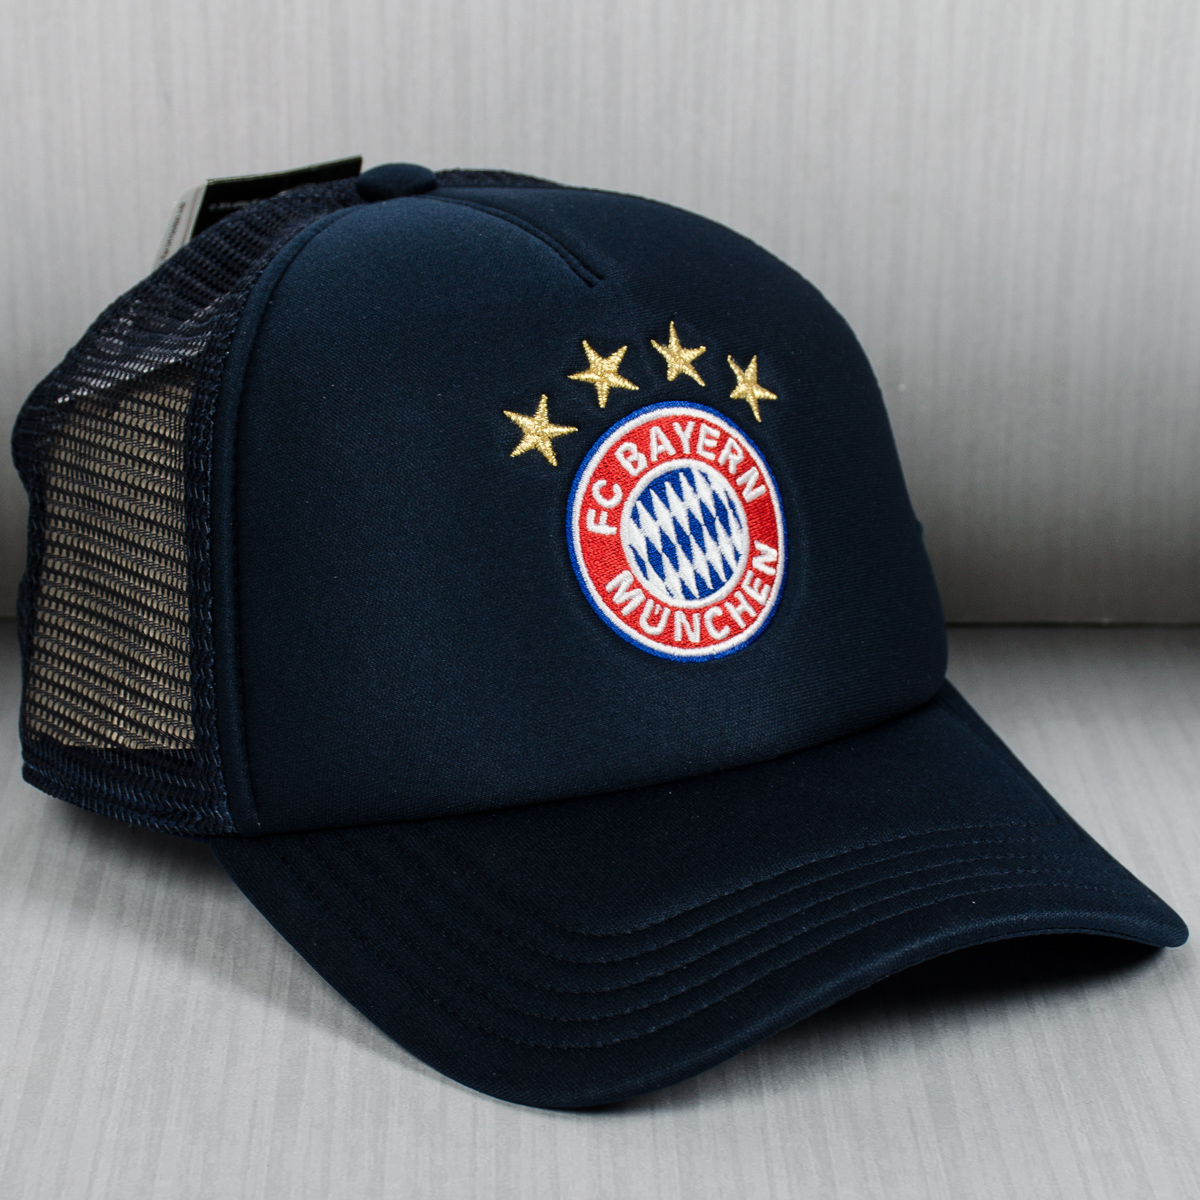 adidas fc bayern cap soccer merchandise miunchen bayern. Black Bedroom Furniture Sets. Home Design Ideas